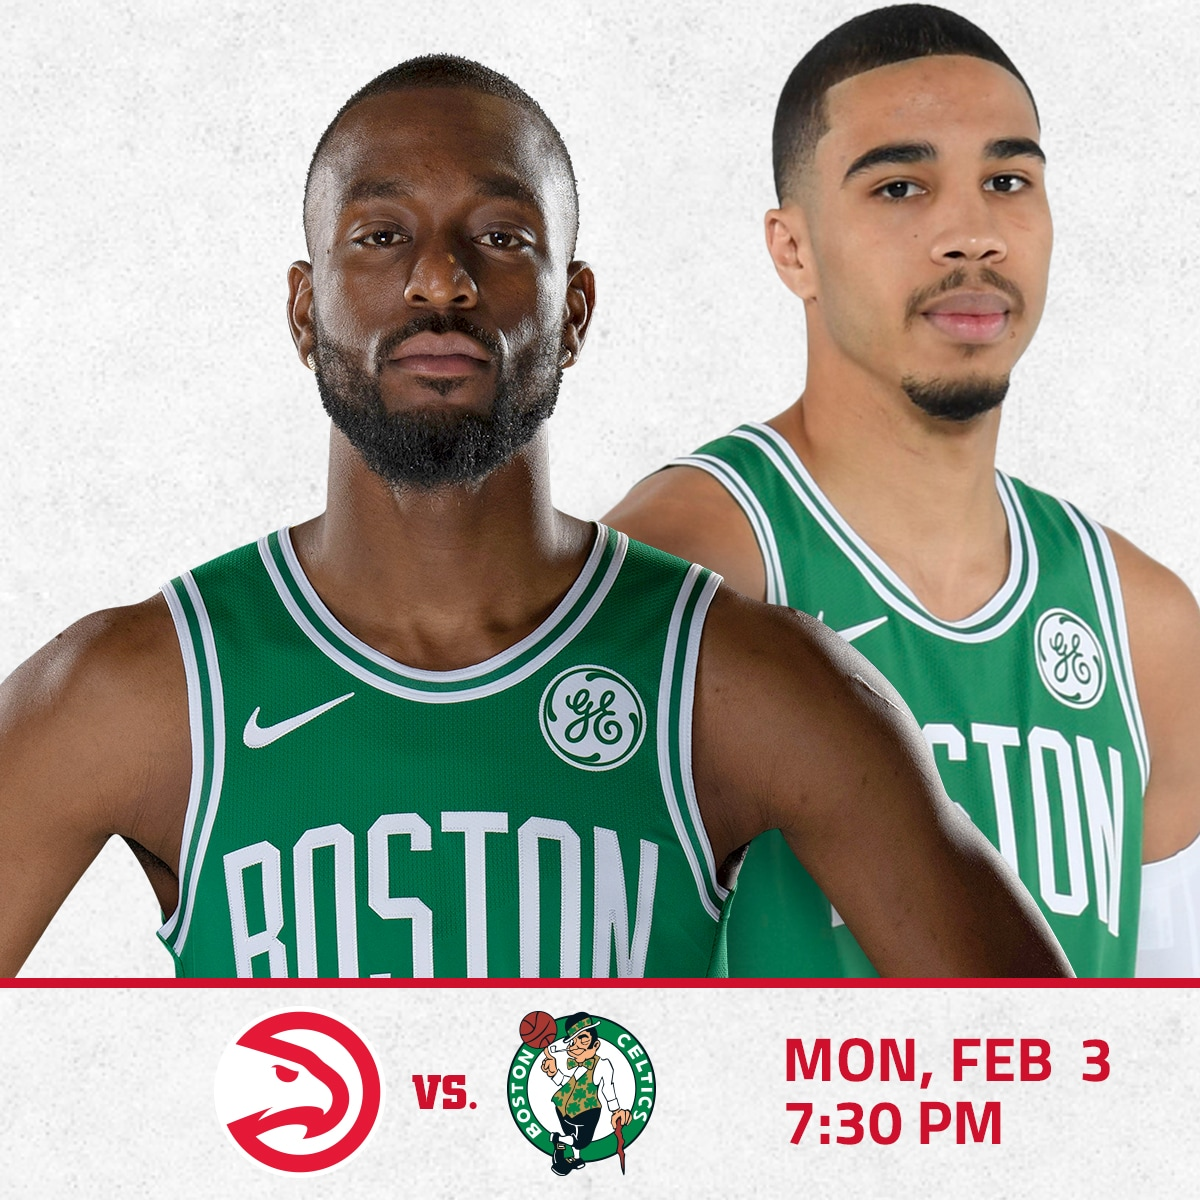 Hawks vs. Celtics